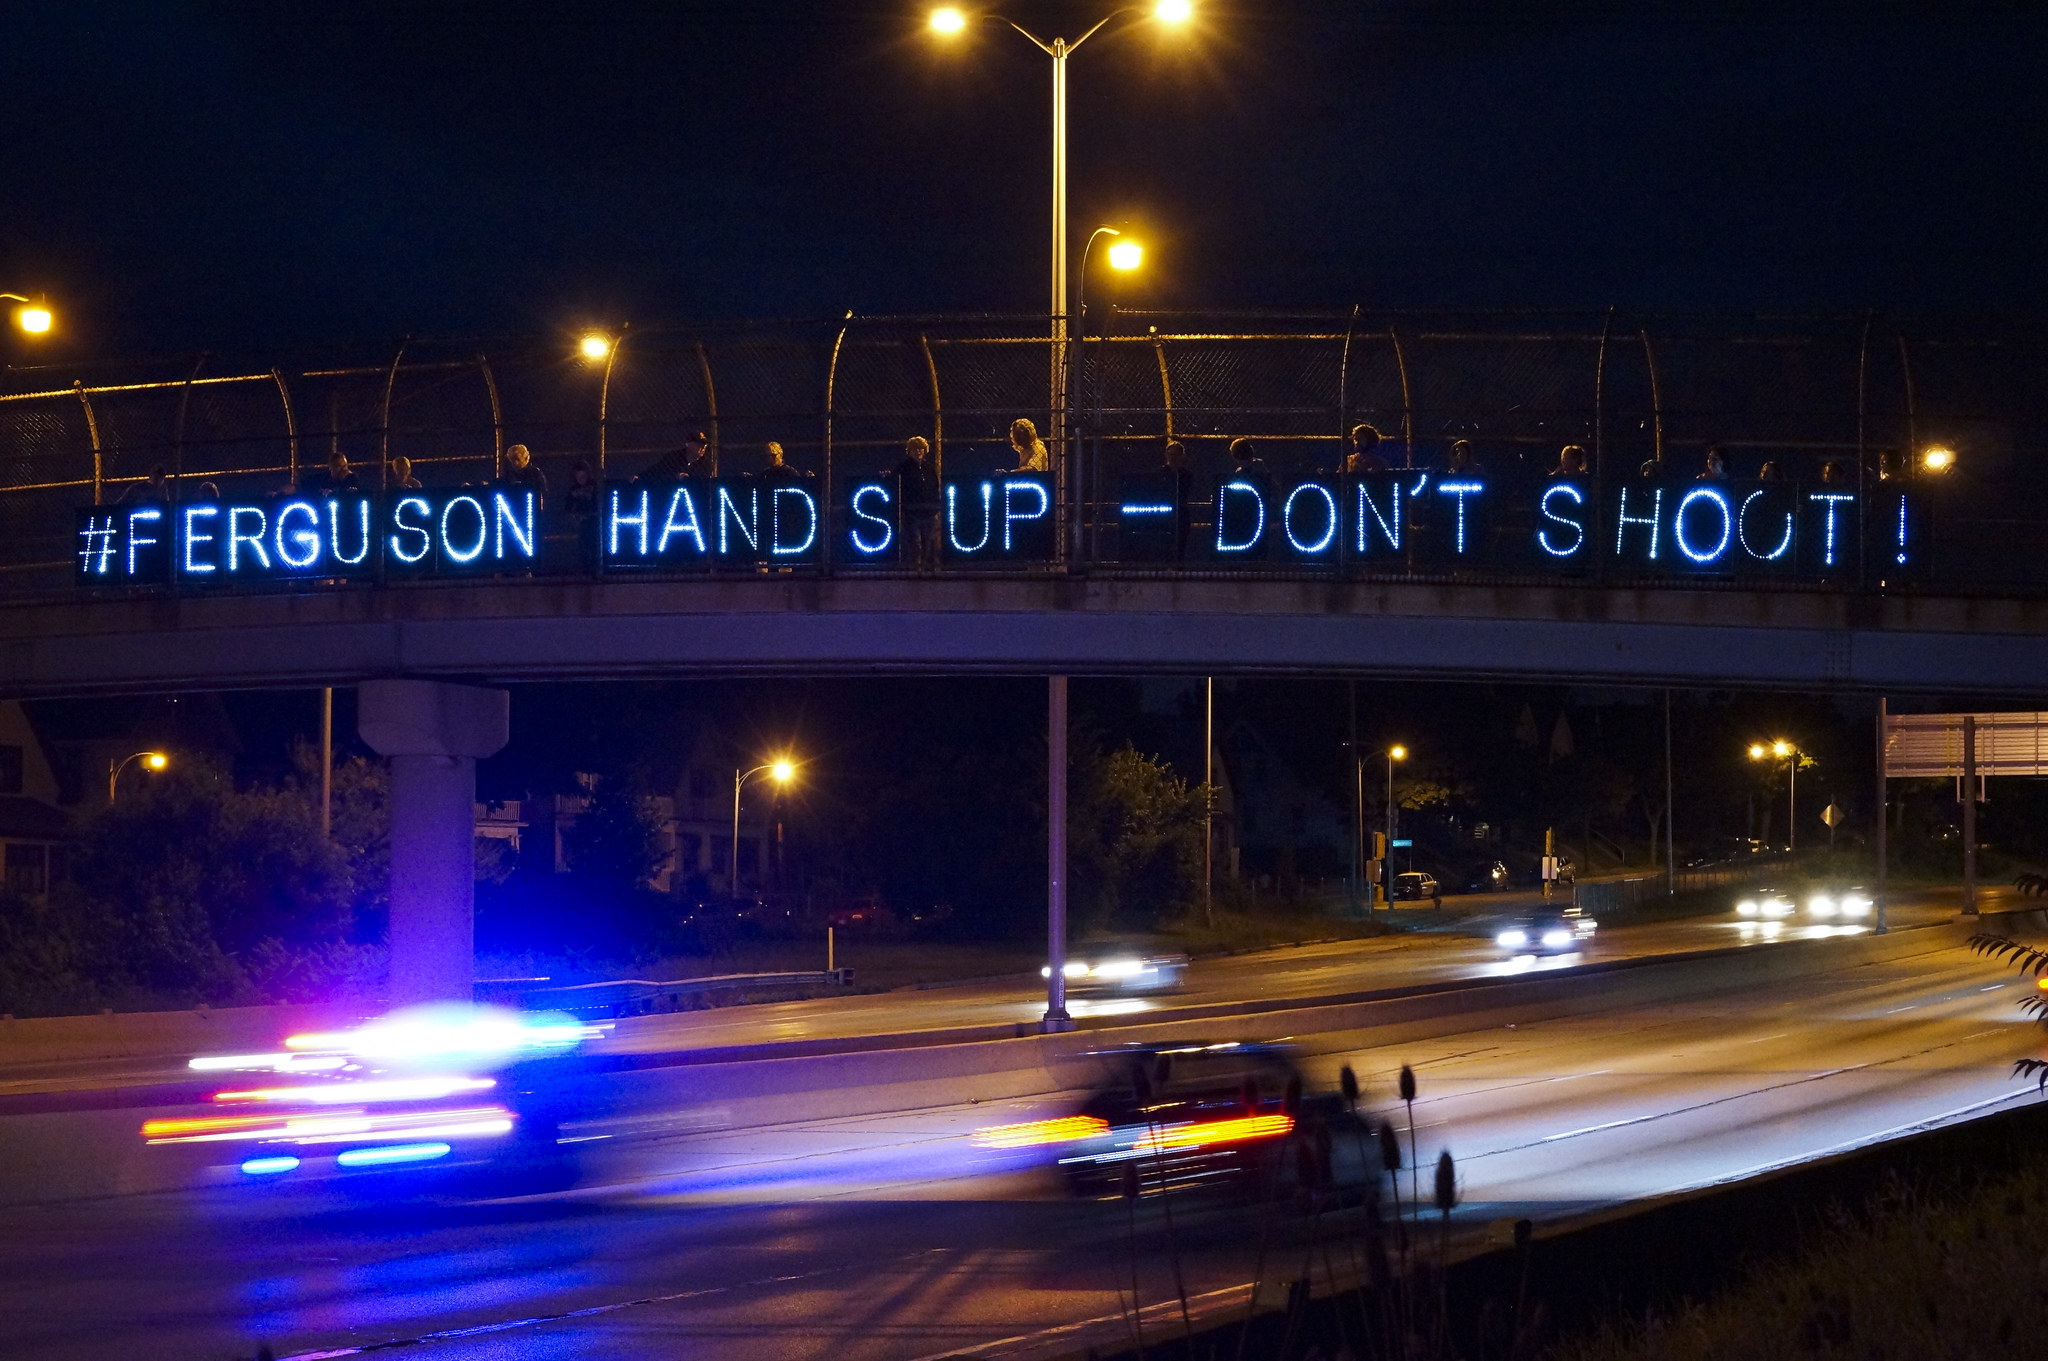 """Message Reflects on Traffic"" in Ferguson, Missouri. Photo by Light Brigading on Flickr."